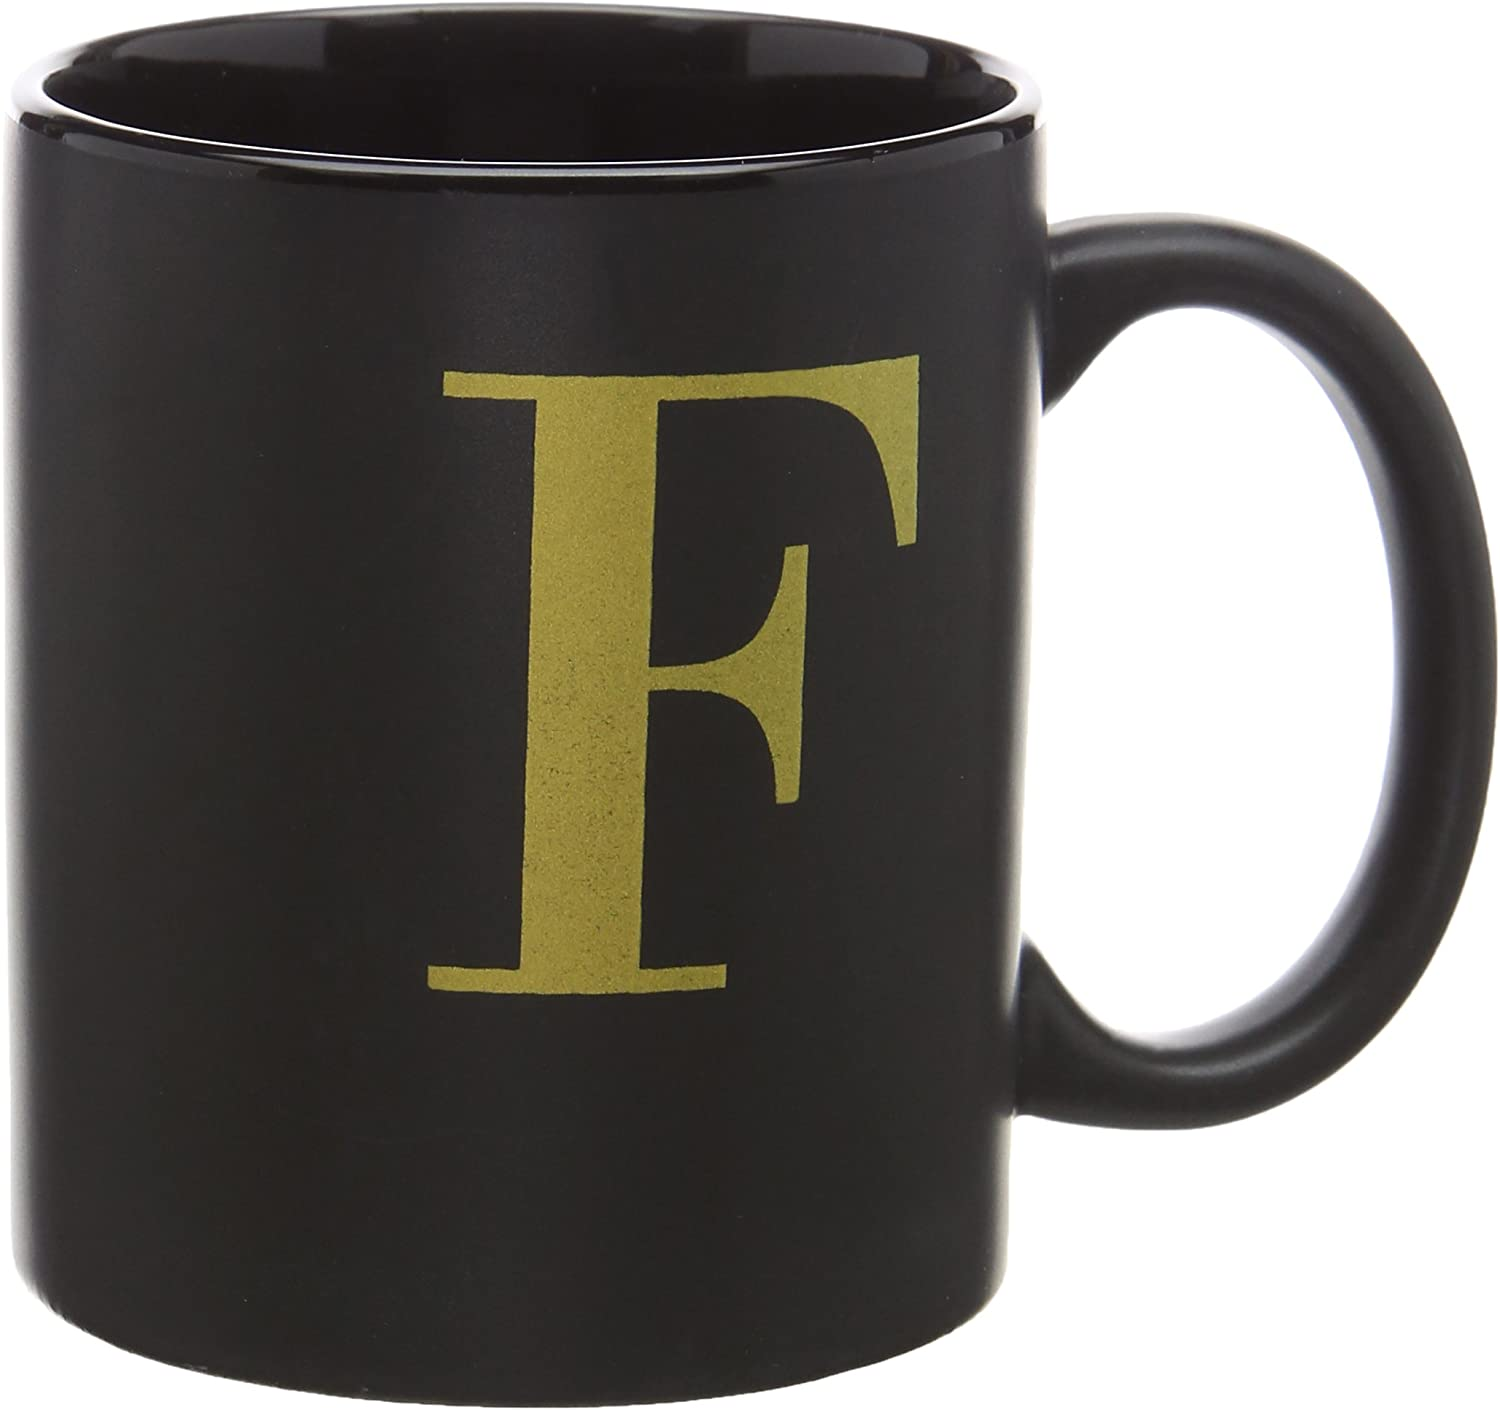 Robert Frederick Black Mug with gold Letter in Box  F, Assorted